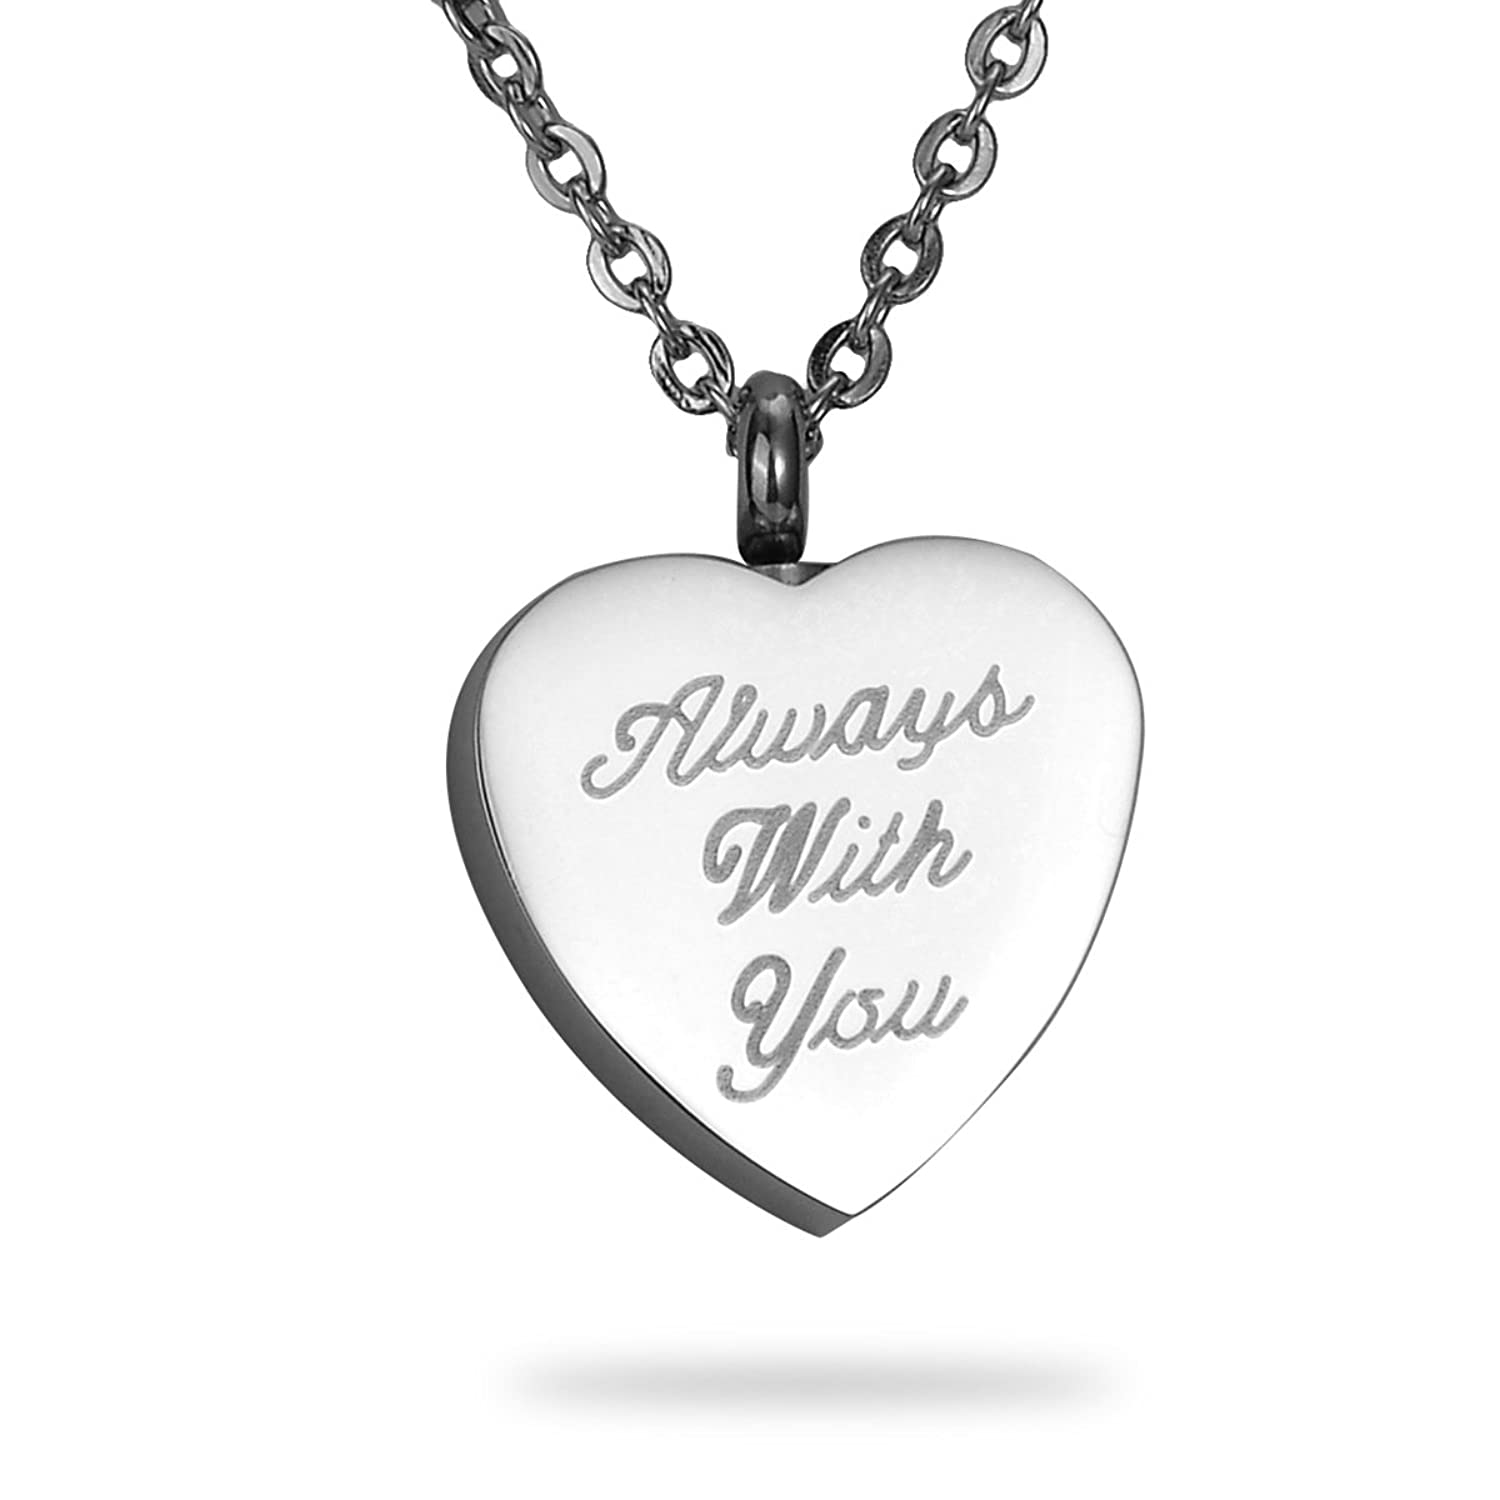 HooAMI Cremation Jewelry Heart Urn Pendant Necklace Memorial Ash Keepsake